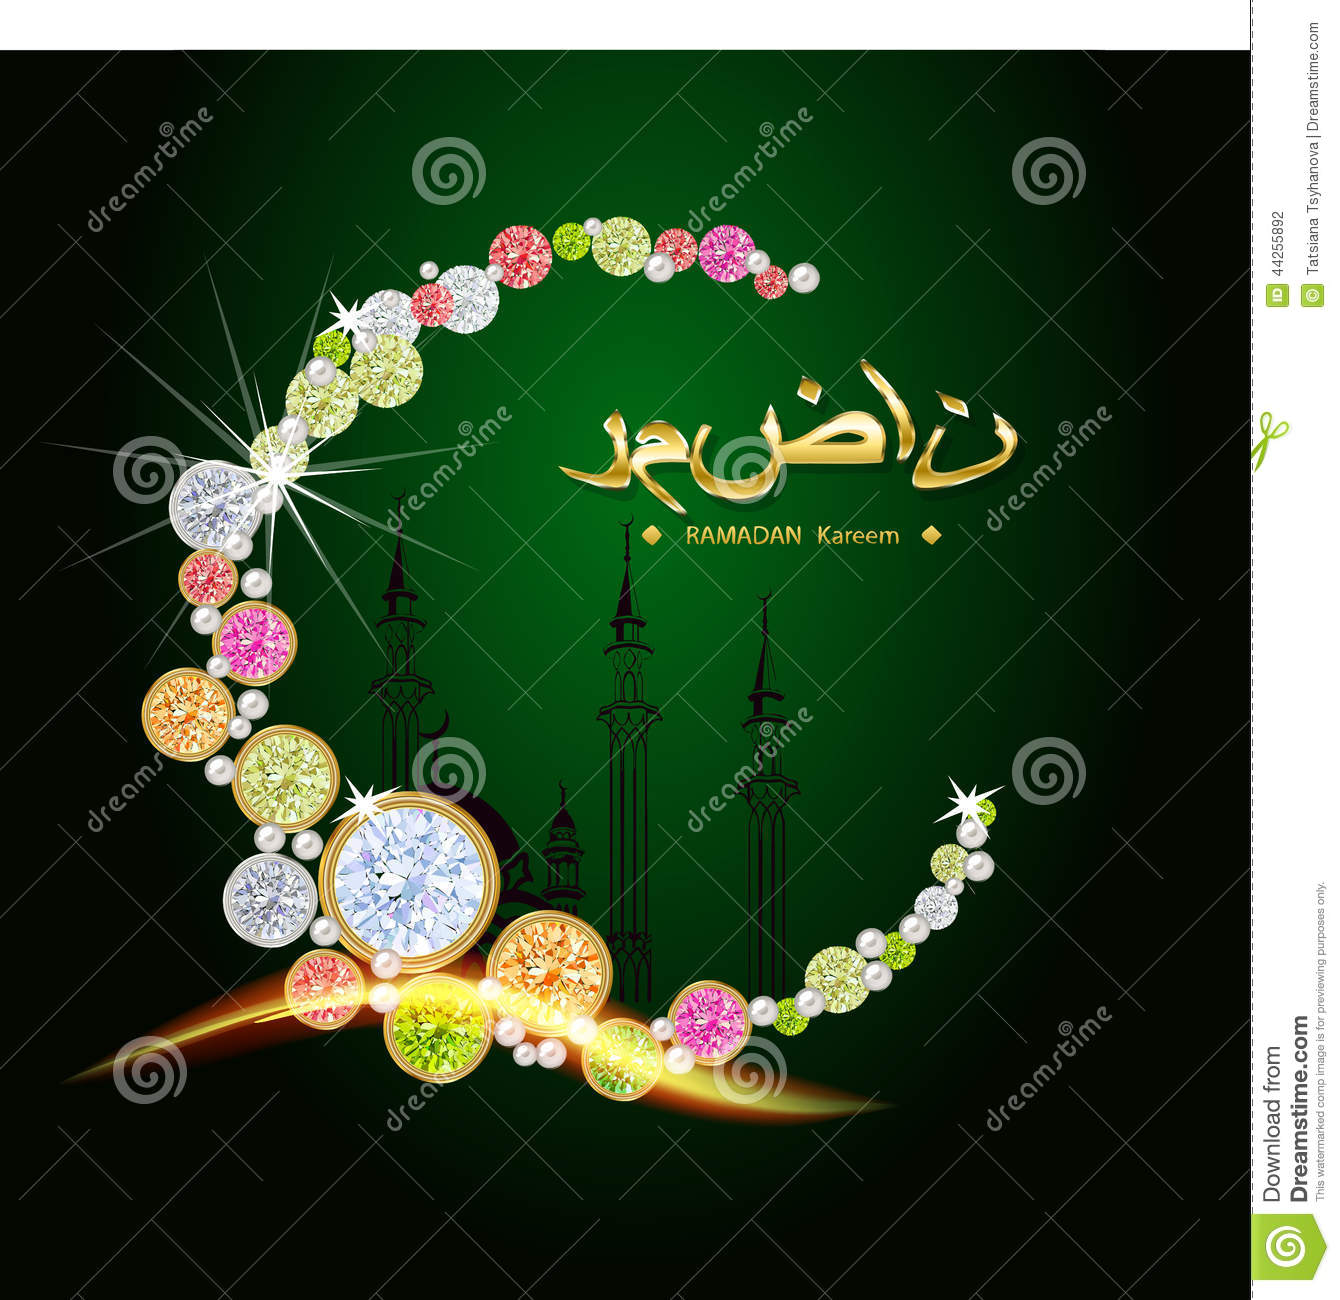 Best Festival Eid Al-Fitr Decorations - eid-ul-fitr-eid-mubarak-greeting-card-arabic-pattern-decorated-light-beige-background-mosque-morning-nature-background-holy-44255892  Snapshot_208146 .jpg